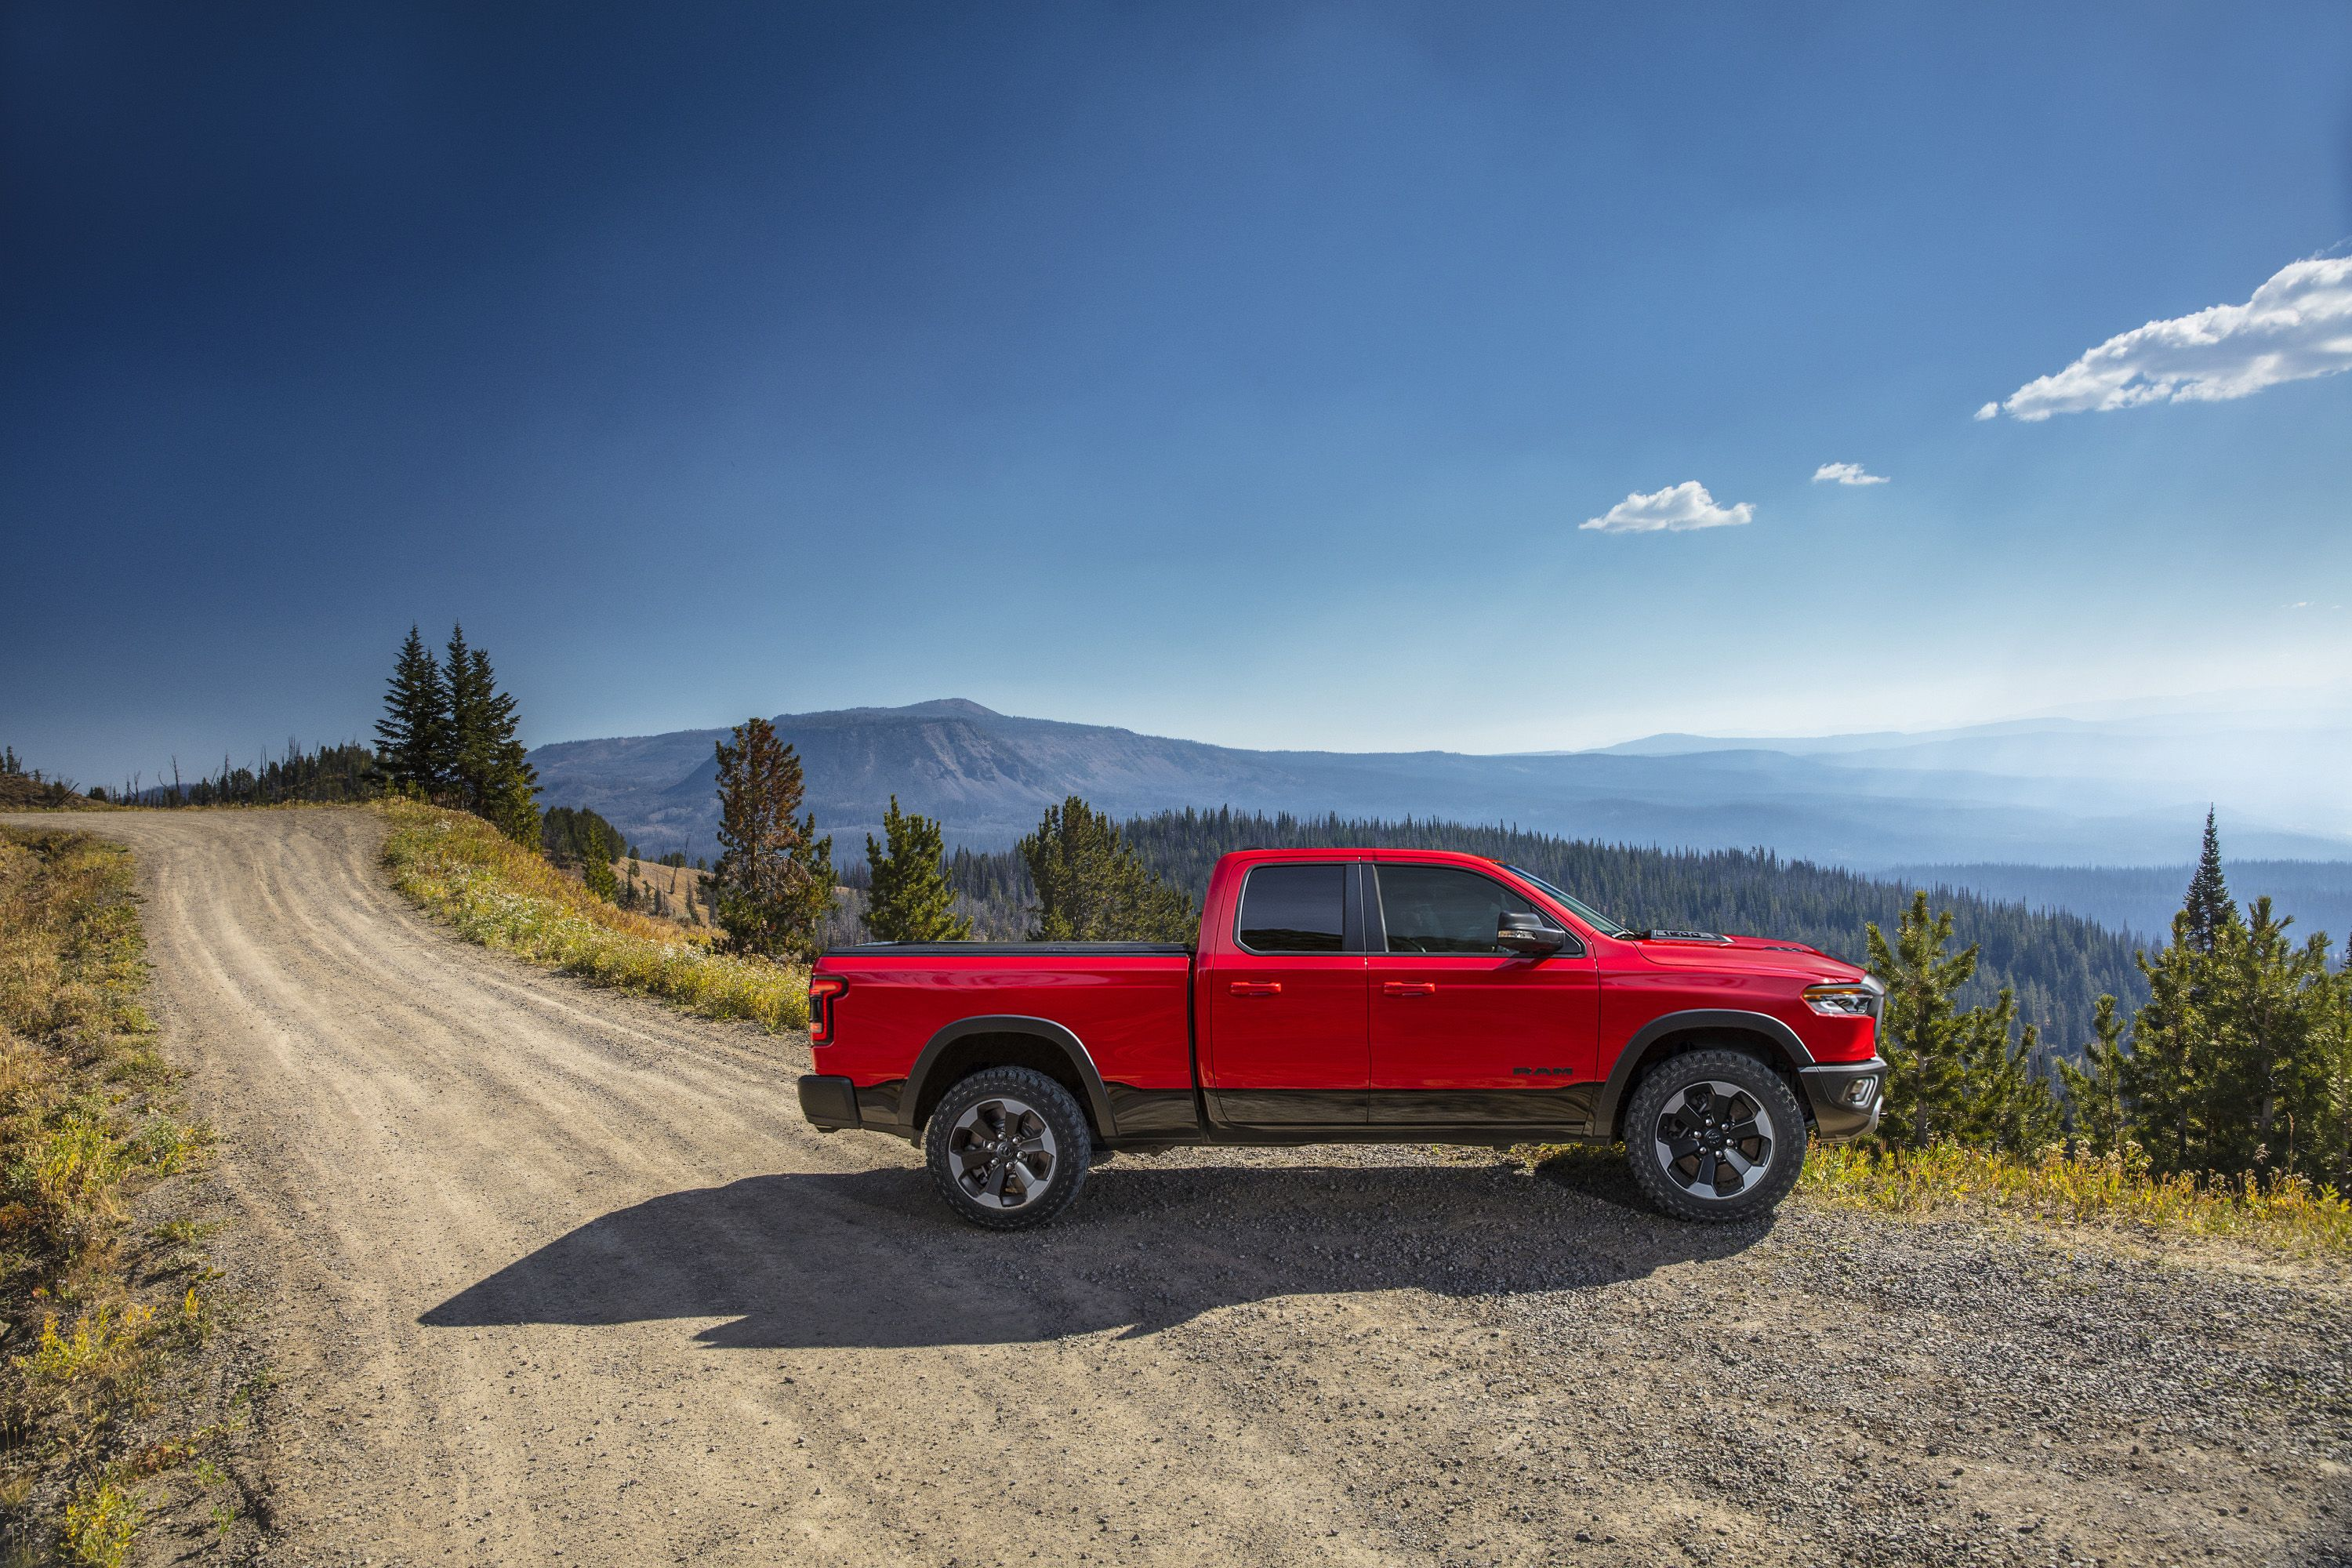 2020 Dodge Dakota Images